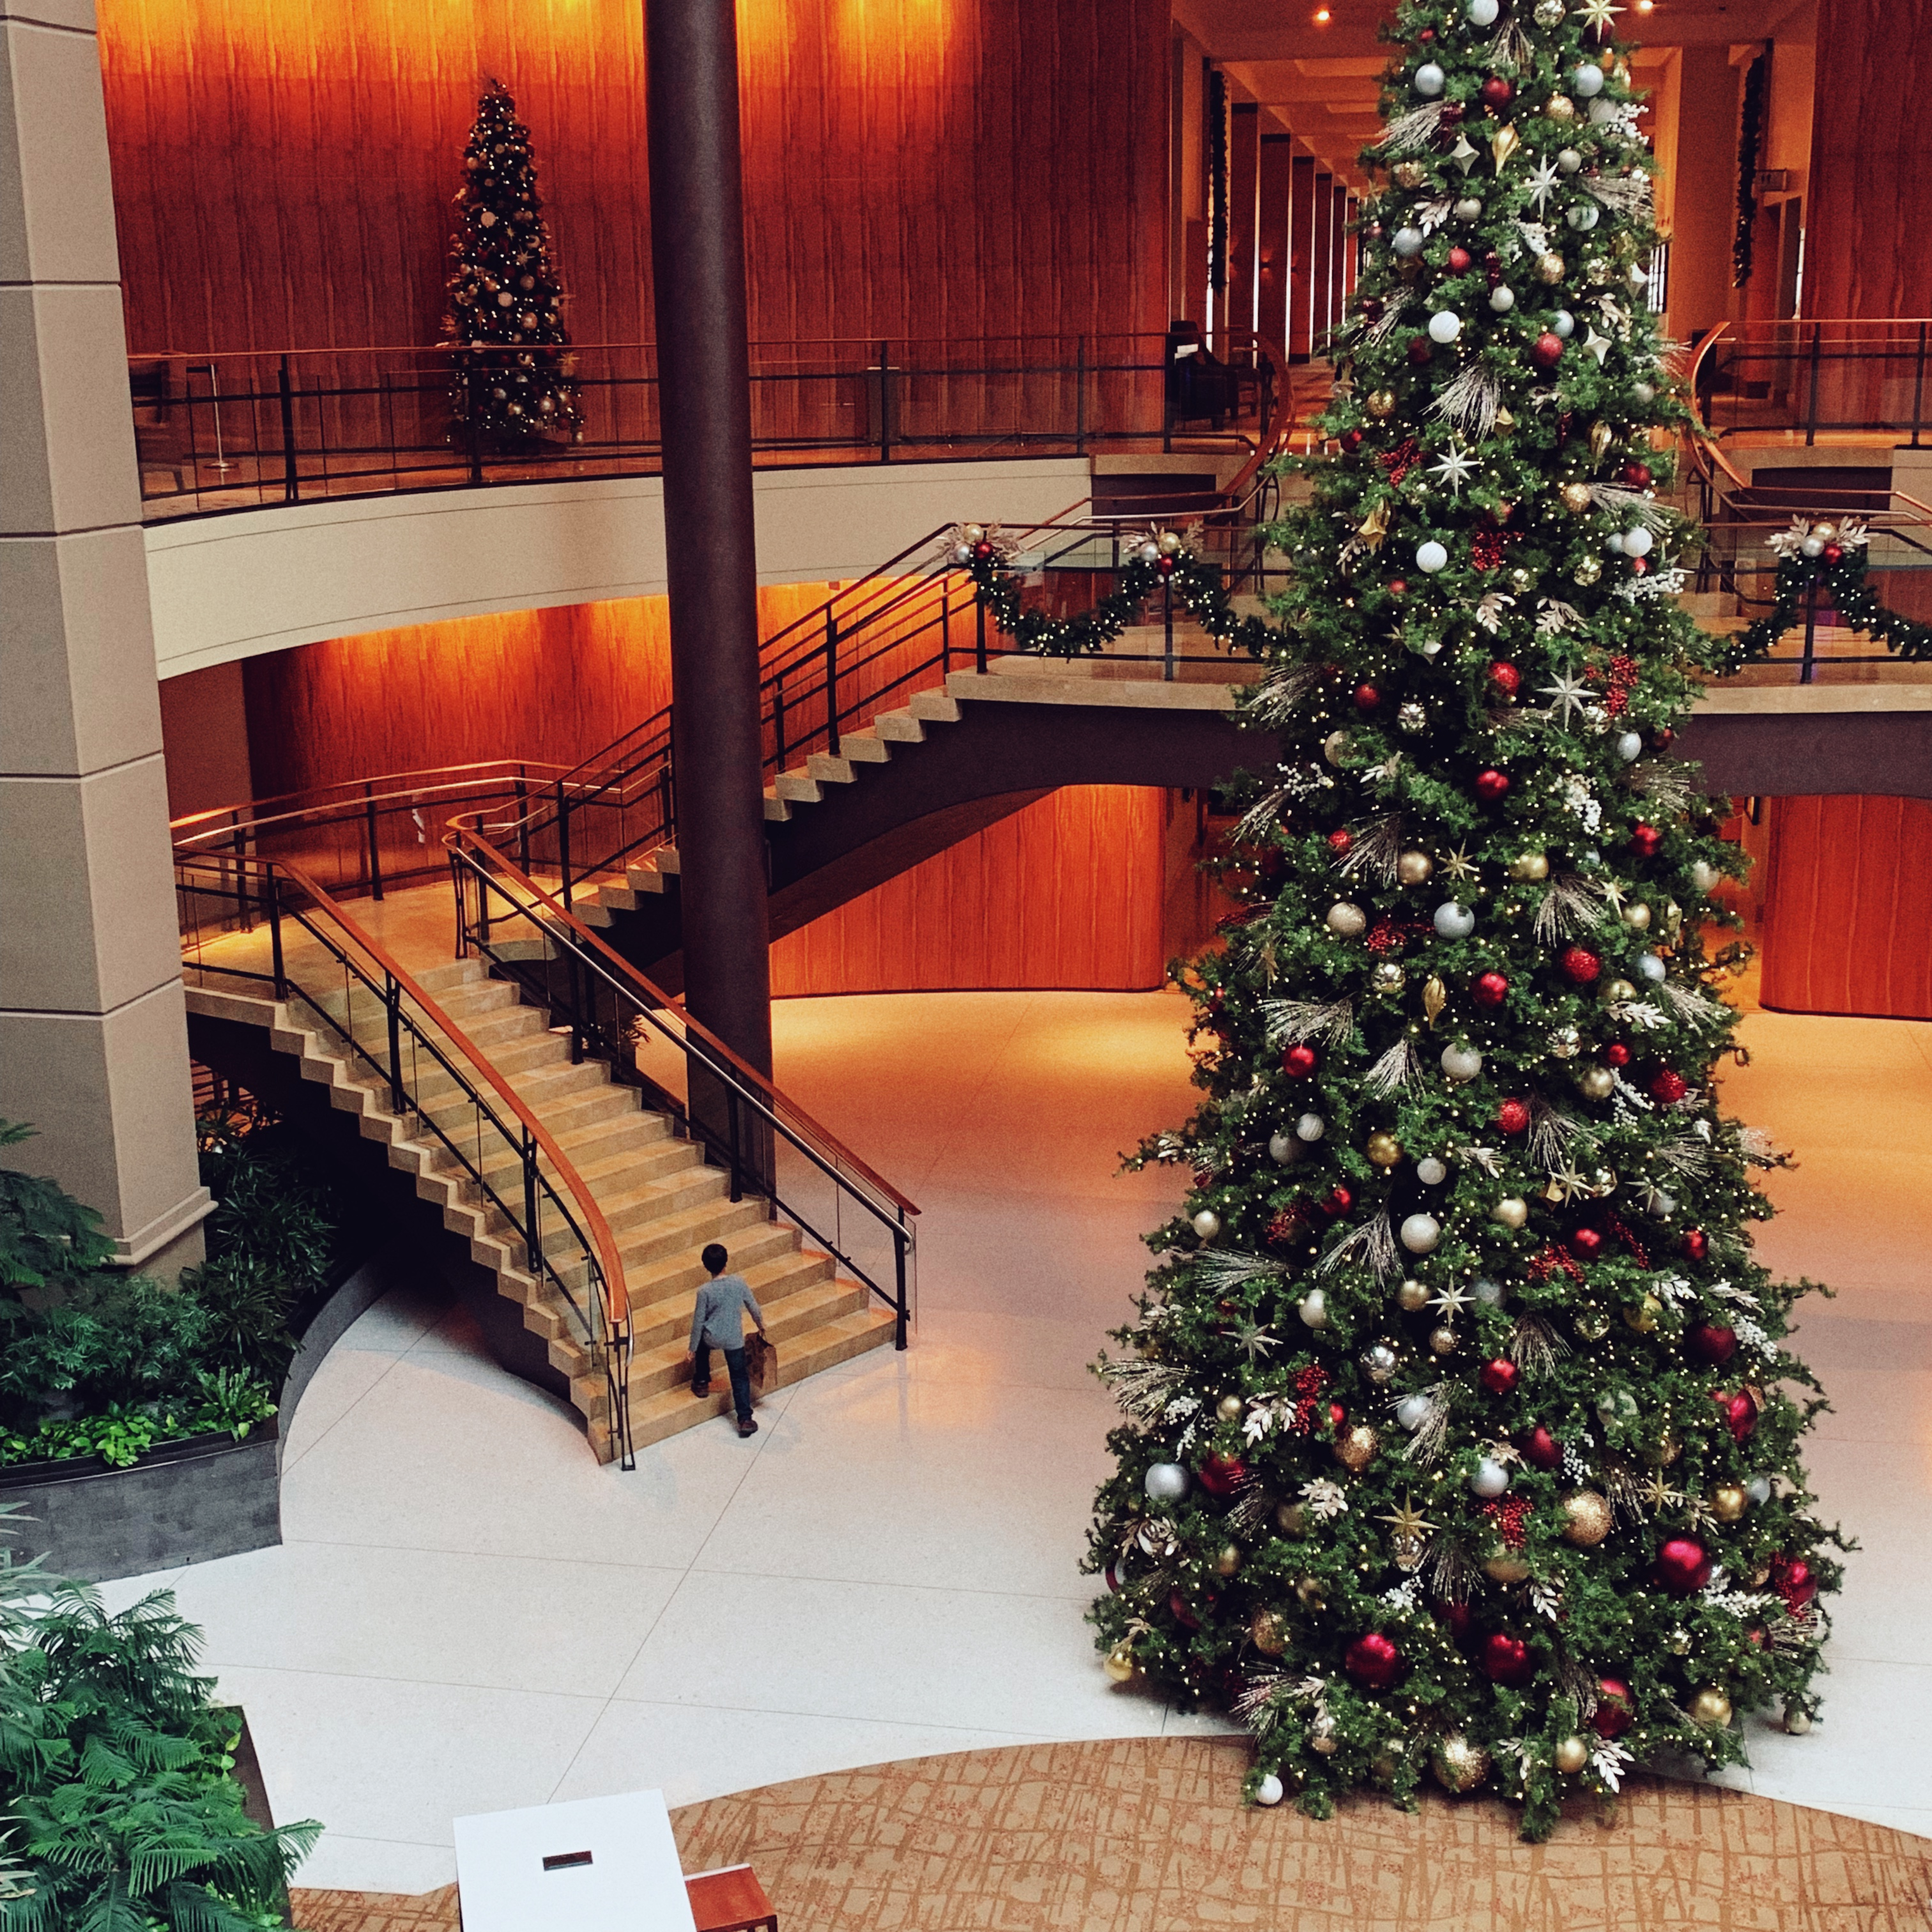 The Hyatt Regency Bellevue is a great place for families to stay for the holidays and it's walkable to Lincoln South Food Hall